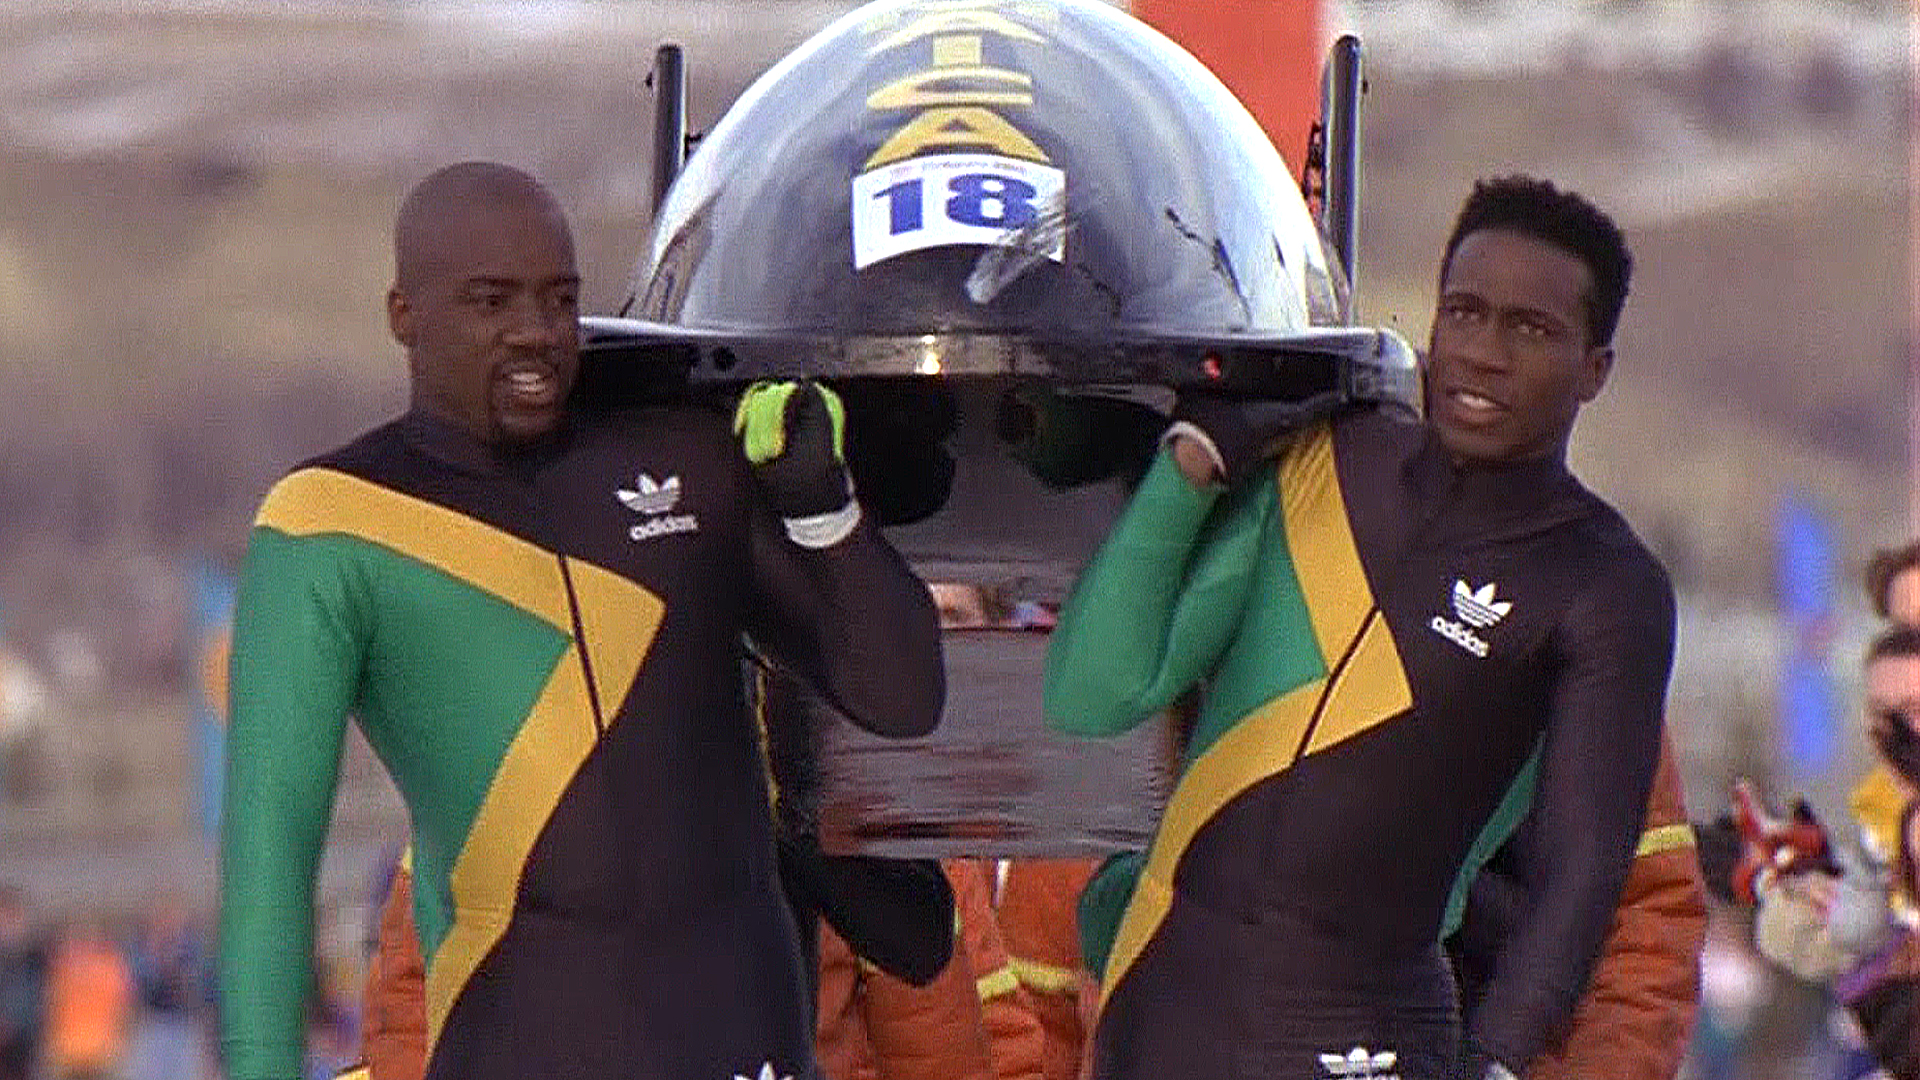 tdy_bobsled_1401191